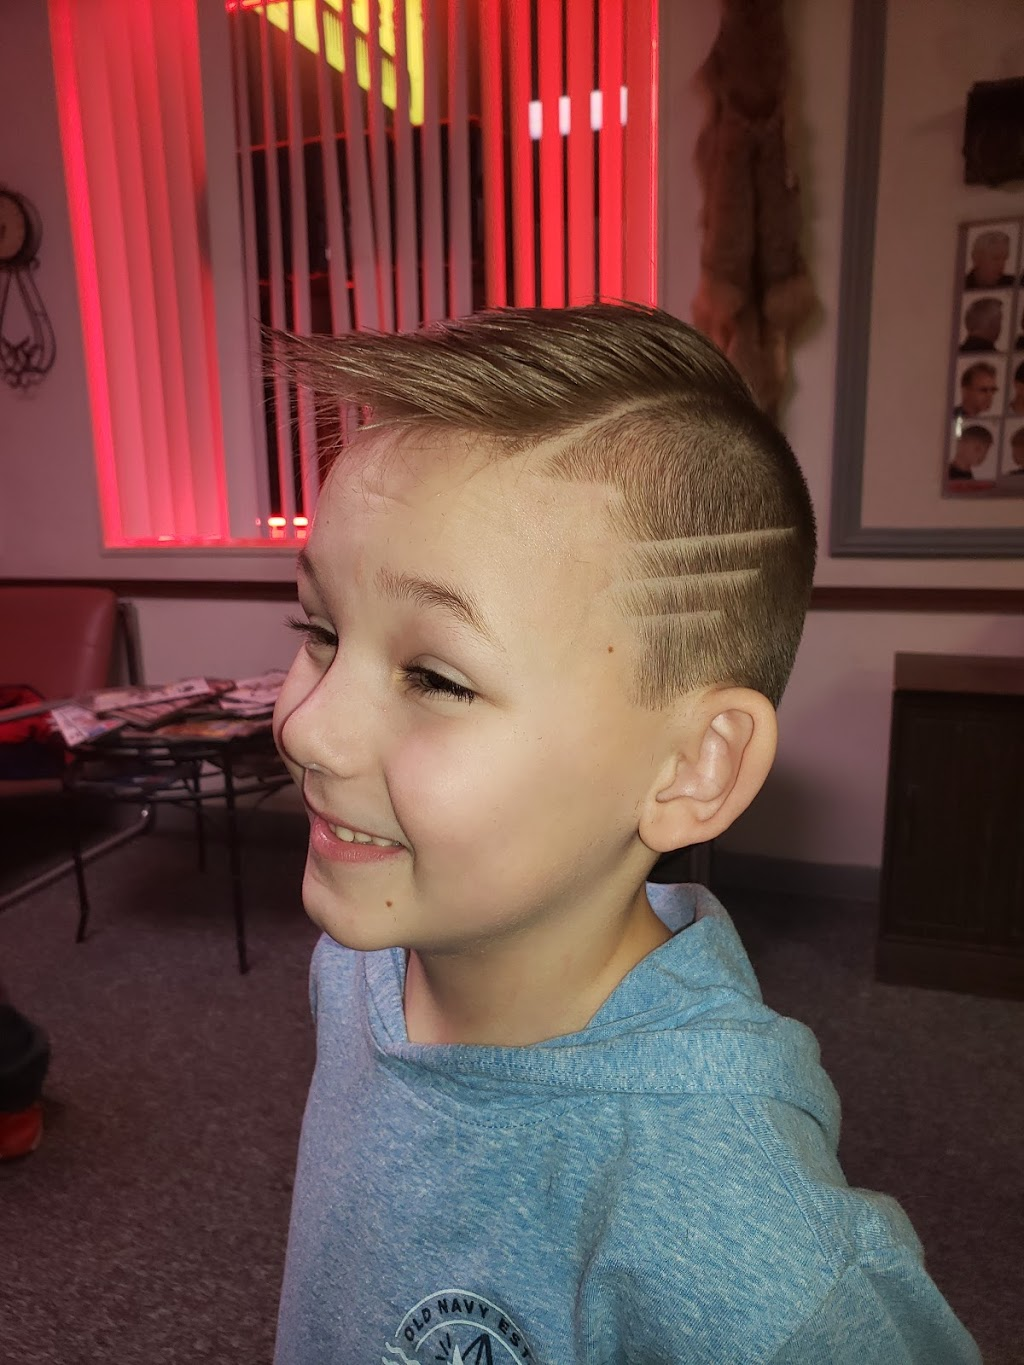 Westside Clippers - hair care  | Photo 6 of 10 | Address: 301 W Commercial Ave, Lowell, IN 46356, USA | Phone: (219) 779-2337